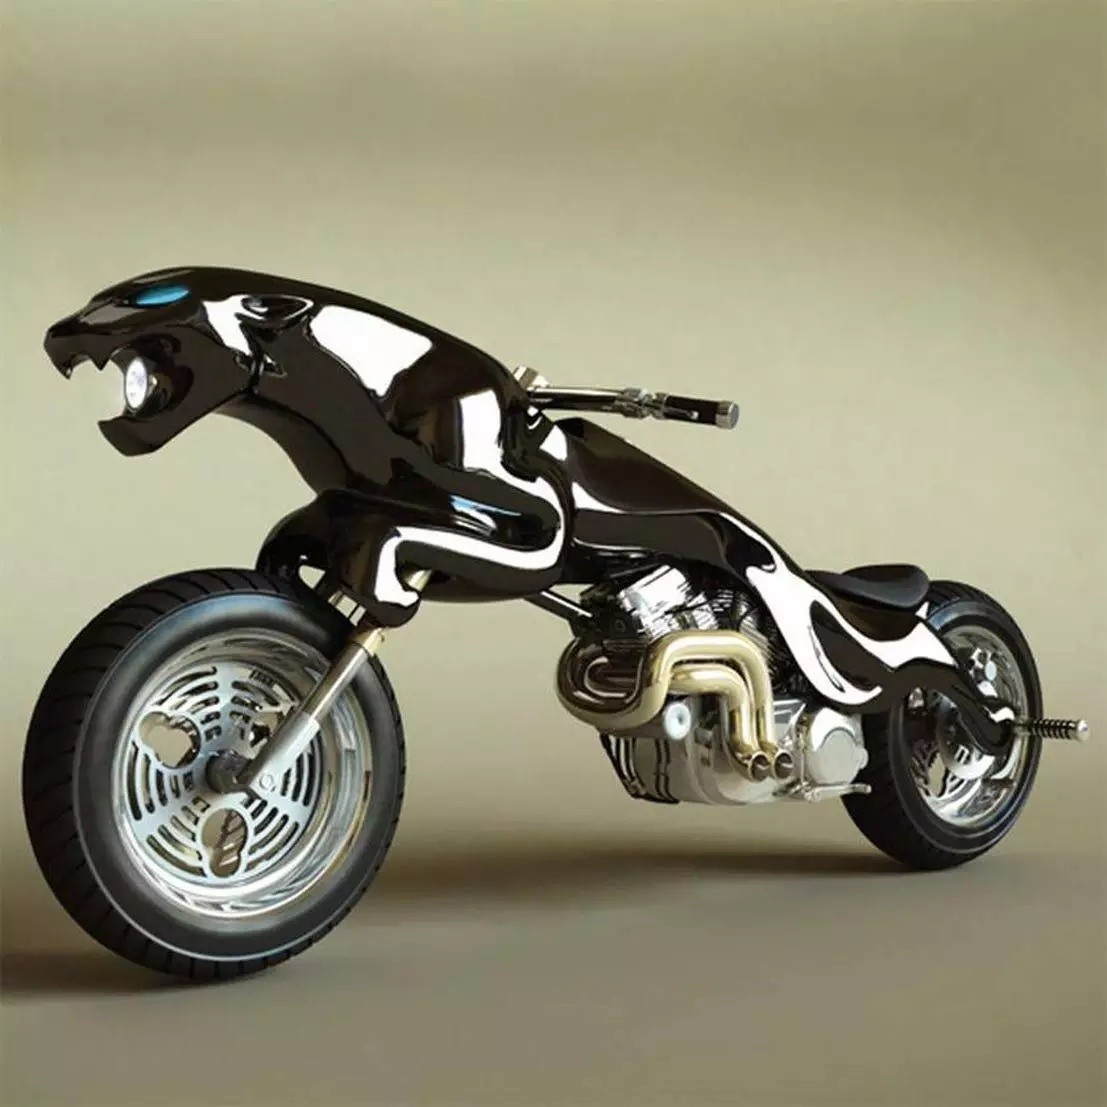 Mobility with Attitude (MWA) – 25 Motorcycle Concepts Bikers Will Ride by 2020